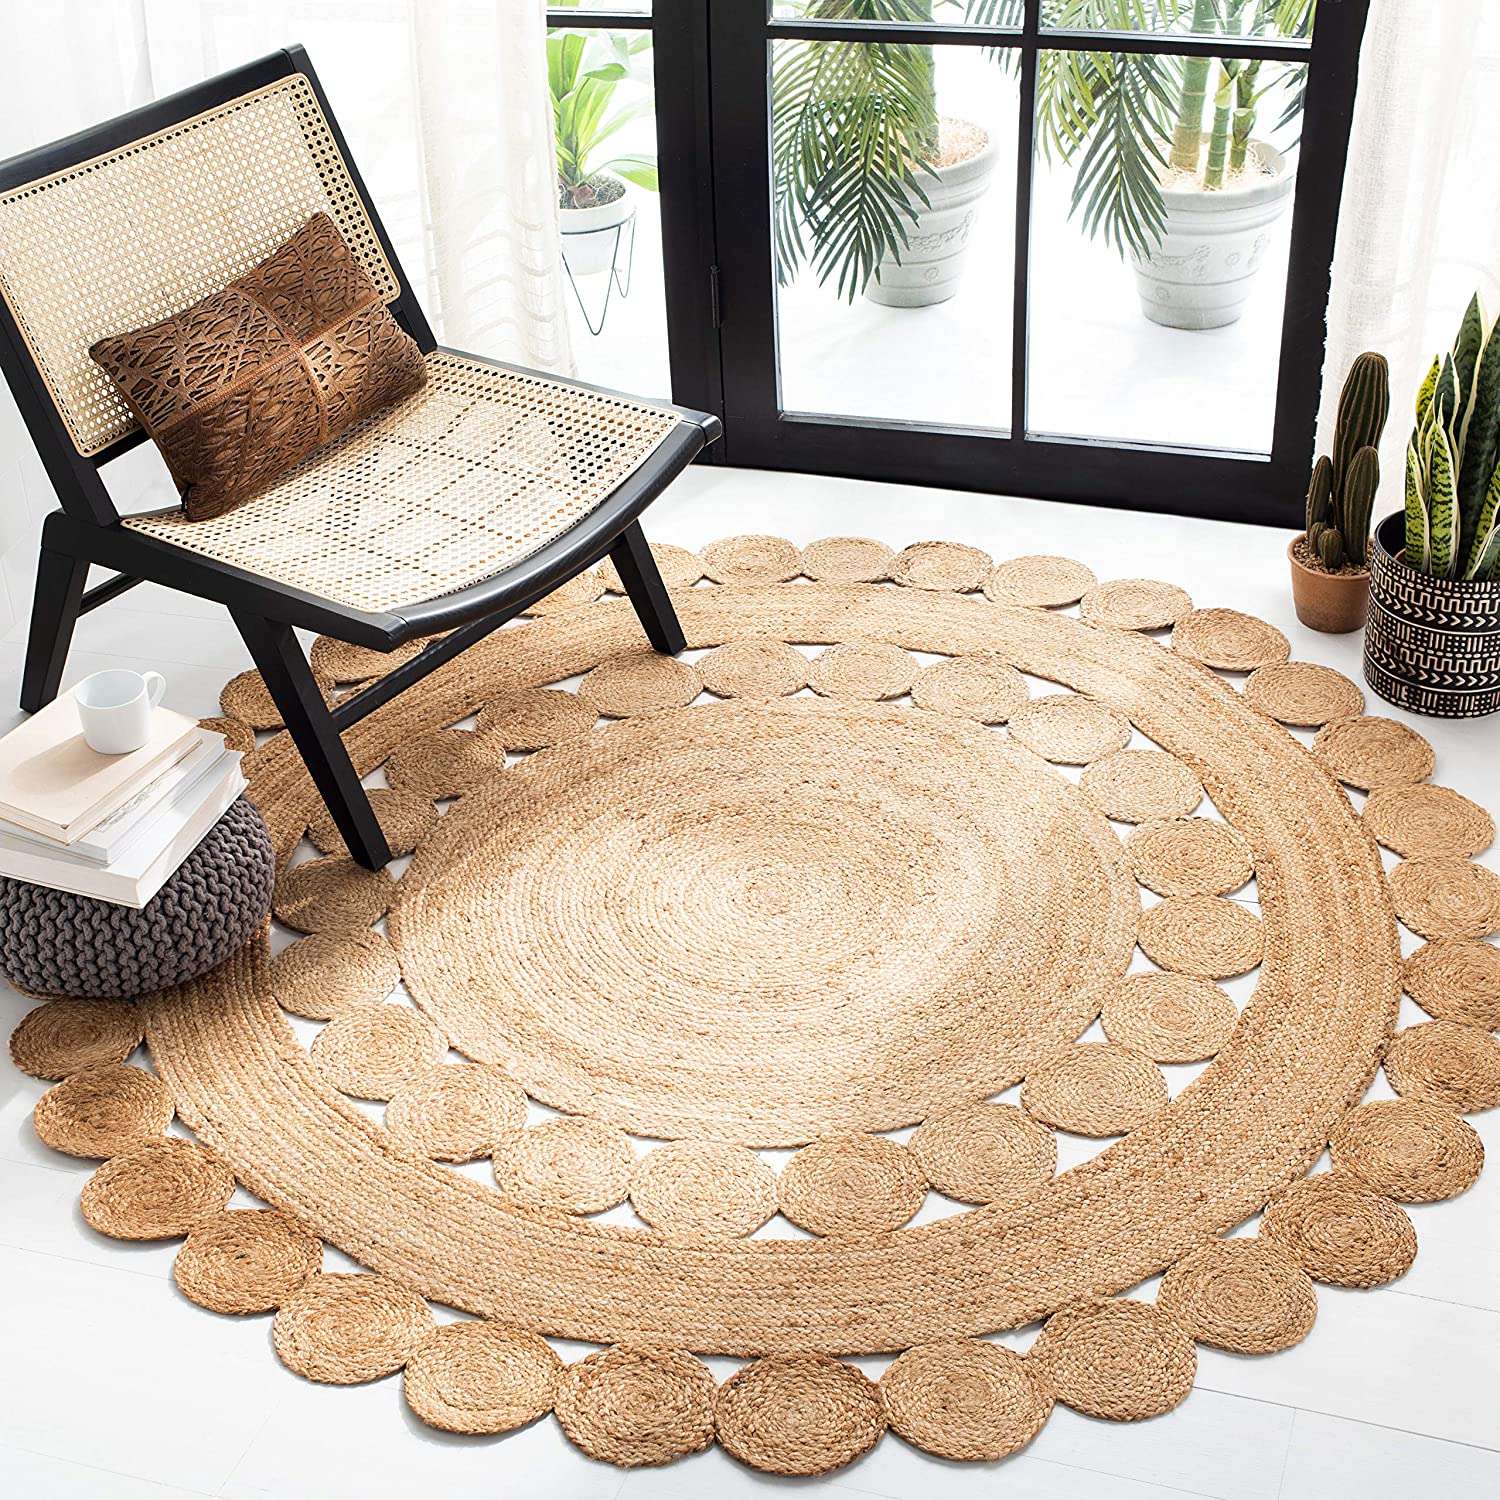 Safavieh Natural Fiber Round Collection NFB308A Handmade Boho Co Under blast sales Free shipping on posting reviews